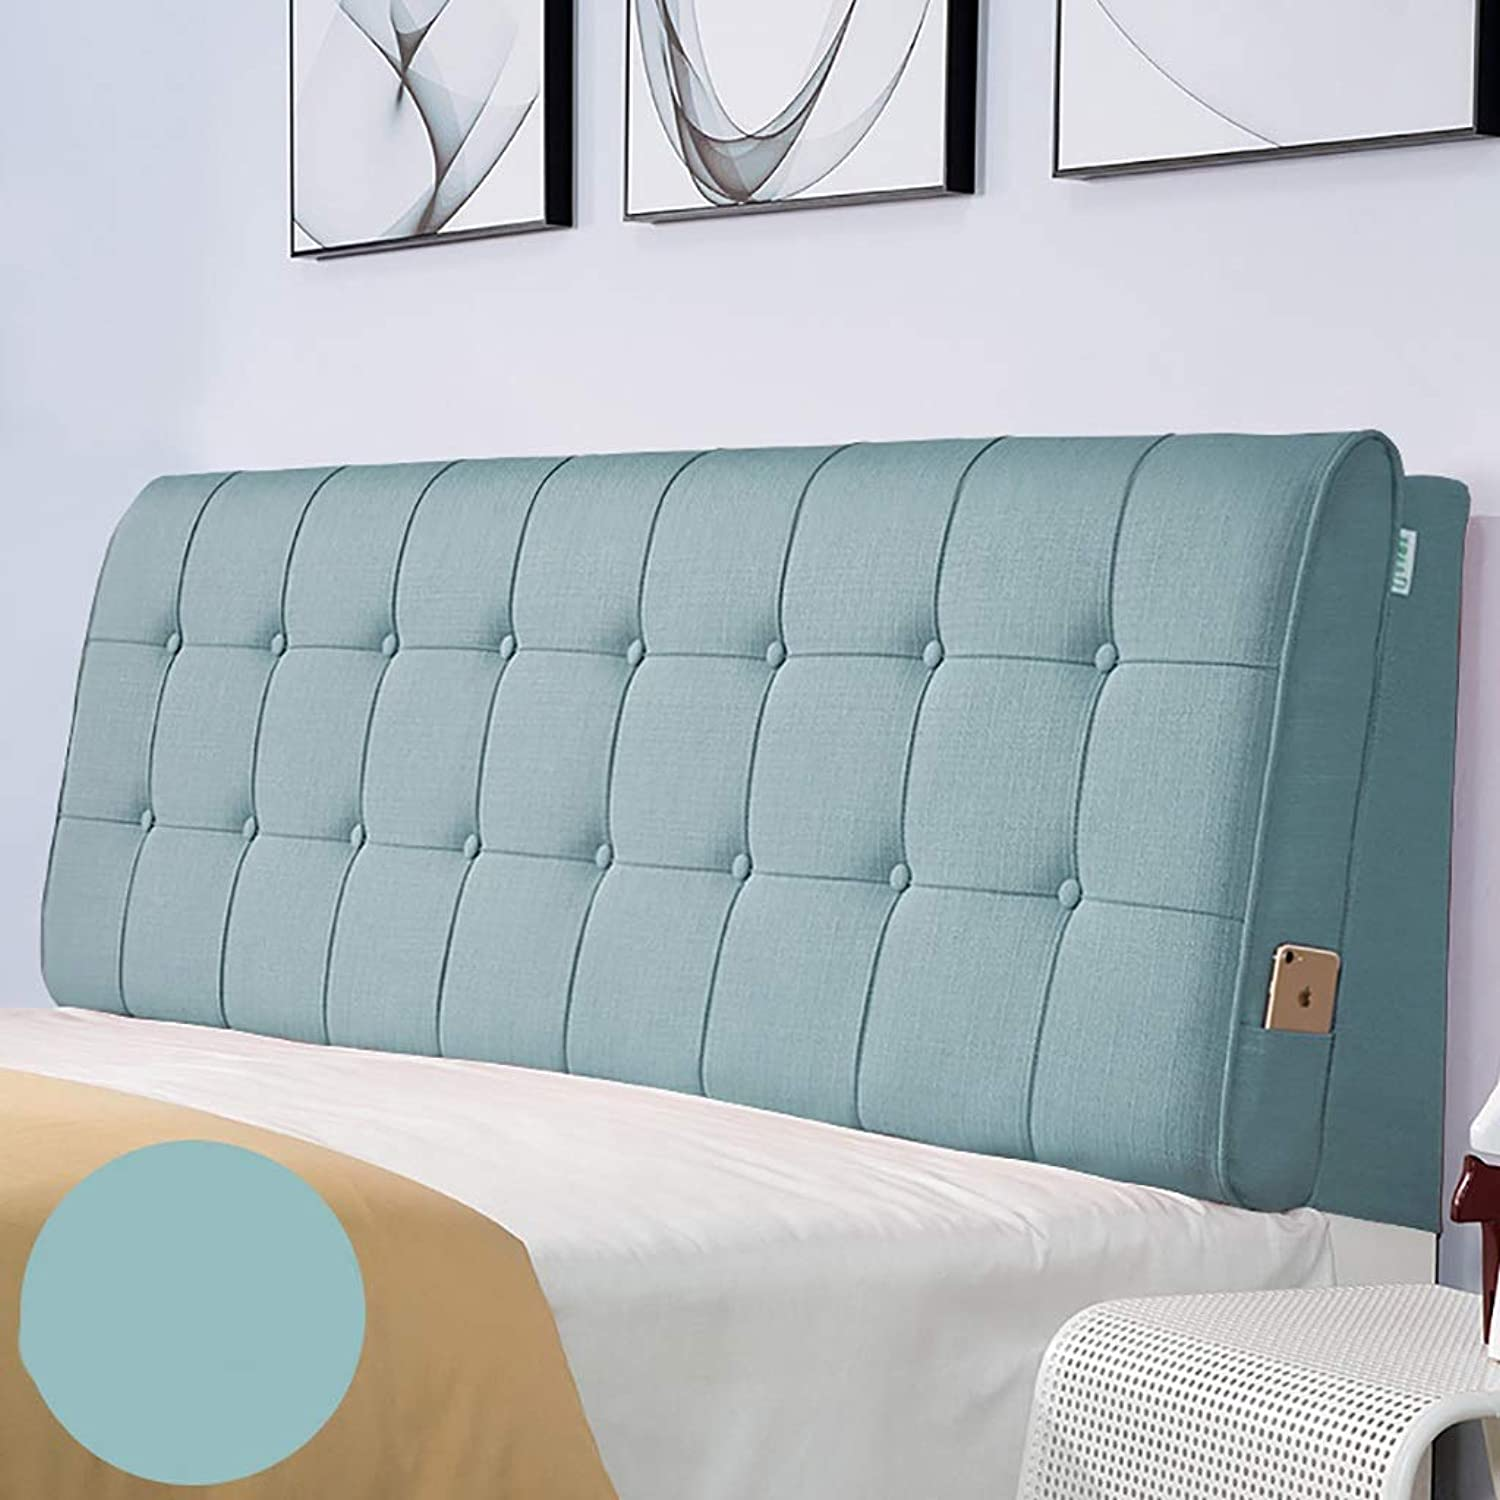 Large Soft Upholstered Headboard Cushion Wall Pillow Linen Fabric Lumbar Pad Bed Backrest Breathable Removable Washable (color   D, Size   120CM)